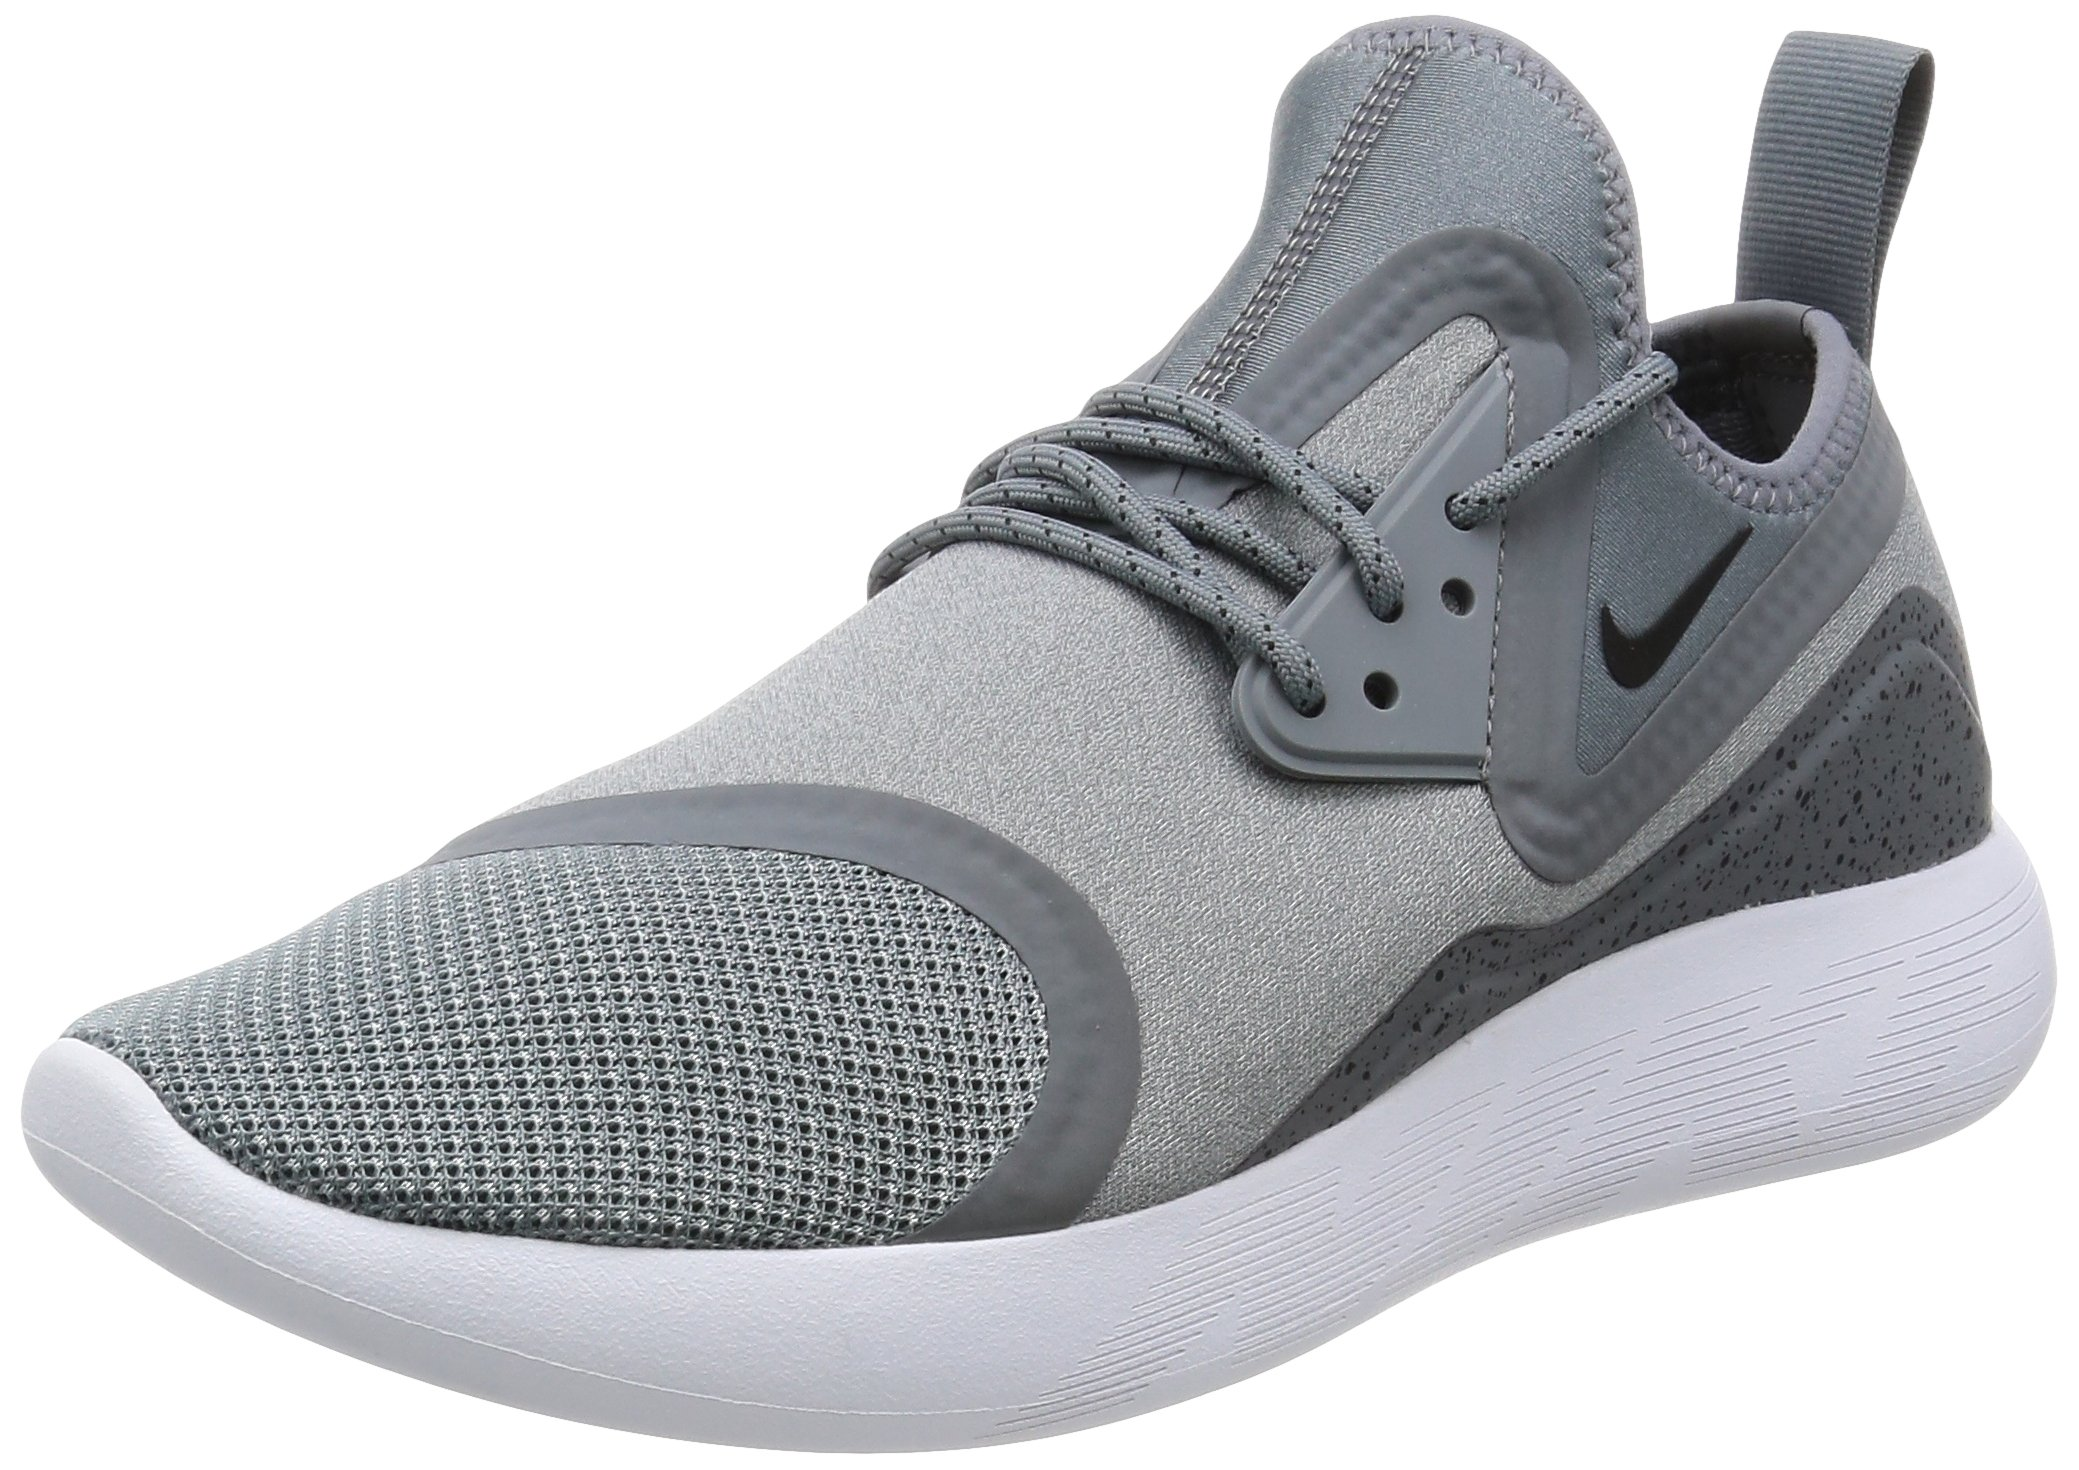 36ef4438d7 Galleon - Nike Lunarcharge Essential Mens Running Trainers 923619 Sneakers  Shoes (UK 9 US 10 EU 44, Cool Grey Black 002)